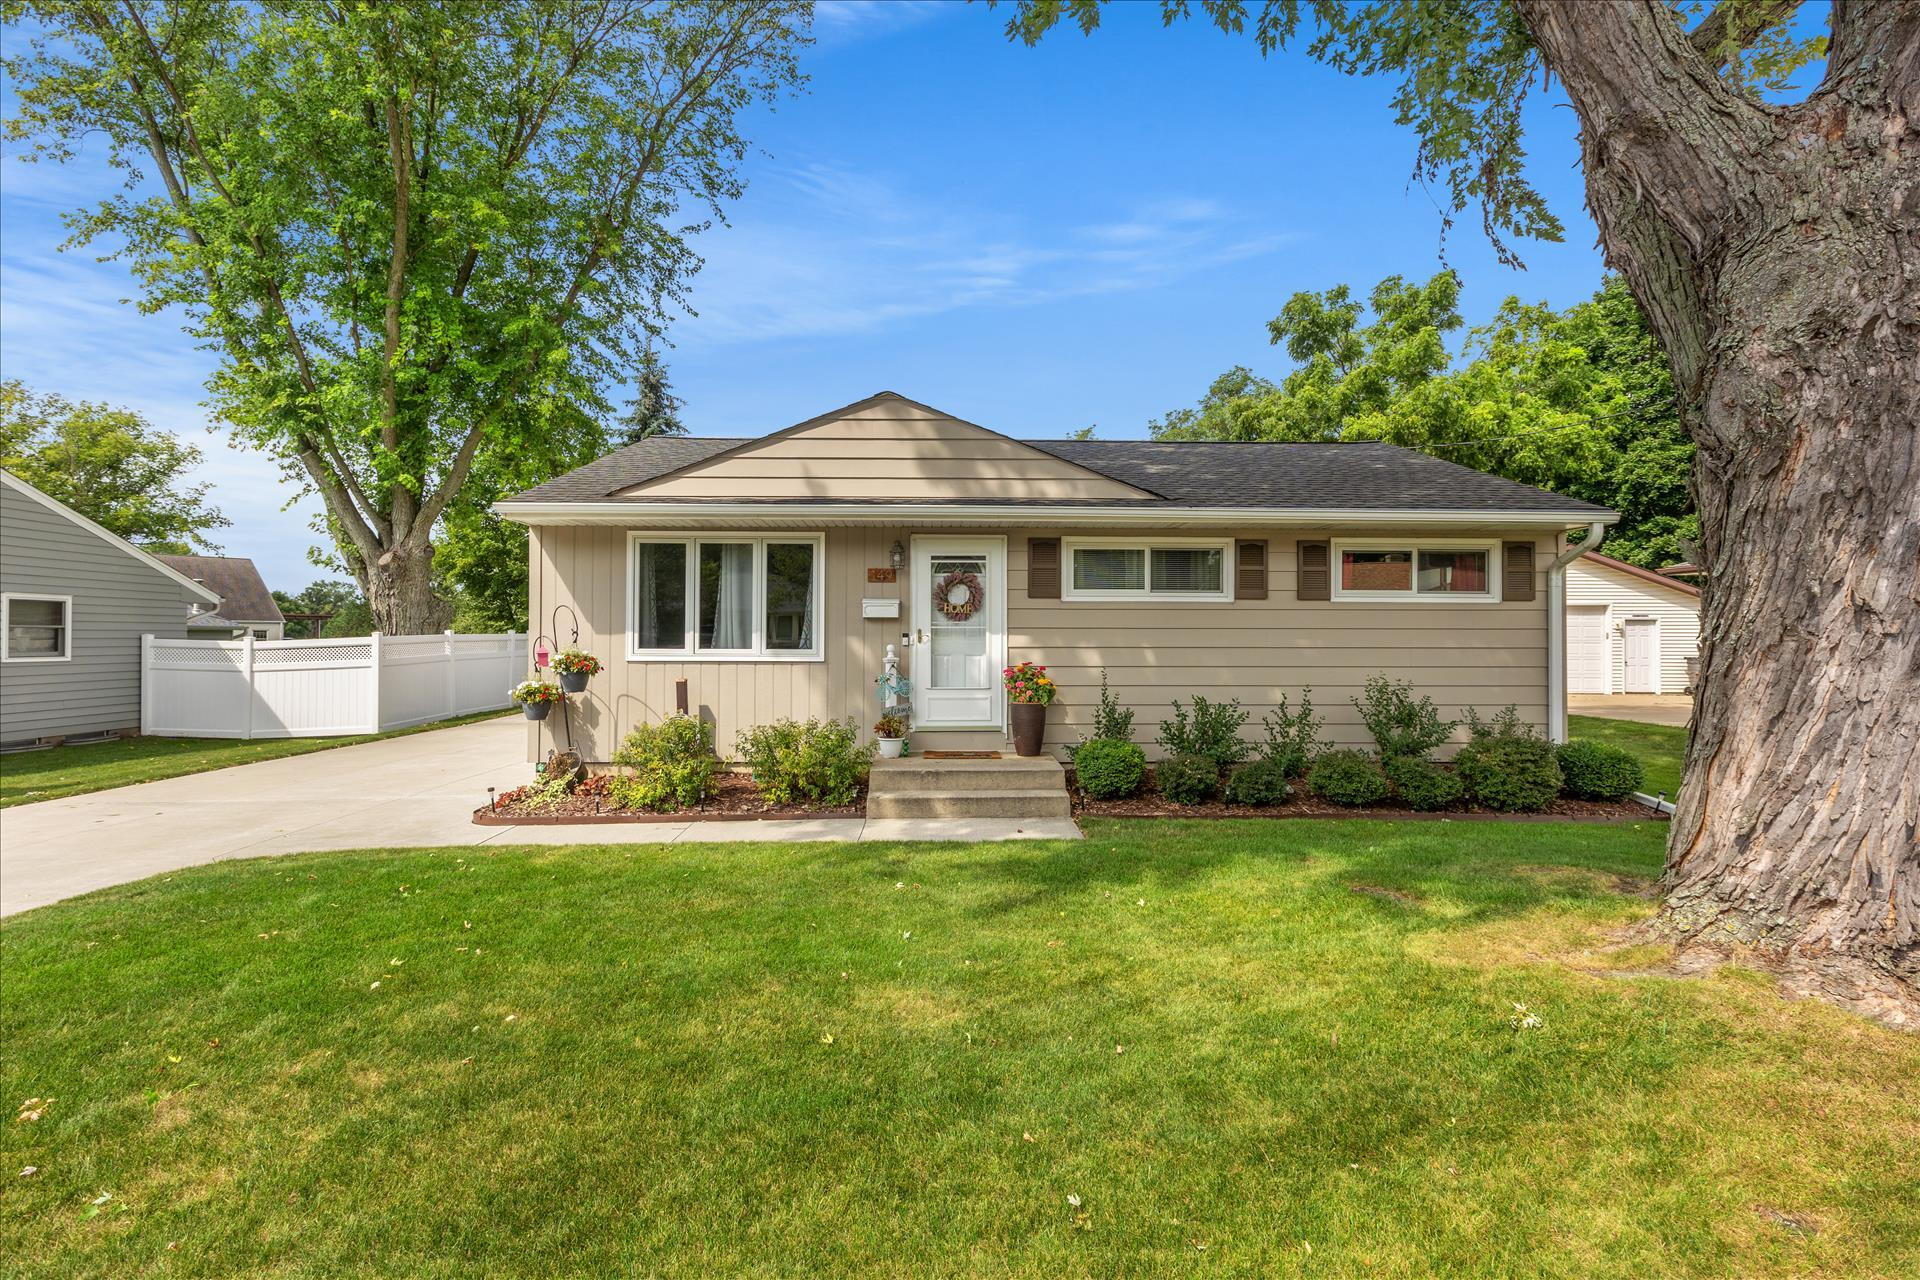 149 Highland Ave, Hartland, Wisconsin 53029, 3 Bedrooms Bedrooms, ,2 BathroomsBathrooms,Single-Family,For Sale,Highland Ave,1760299